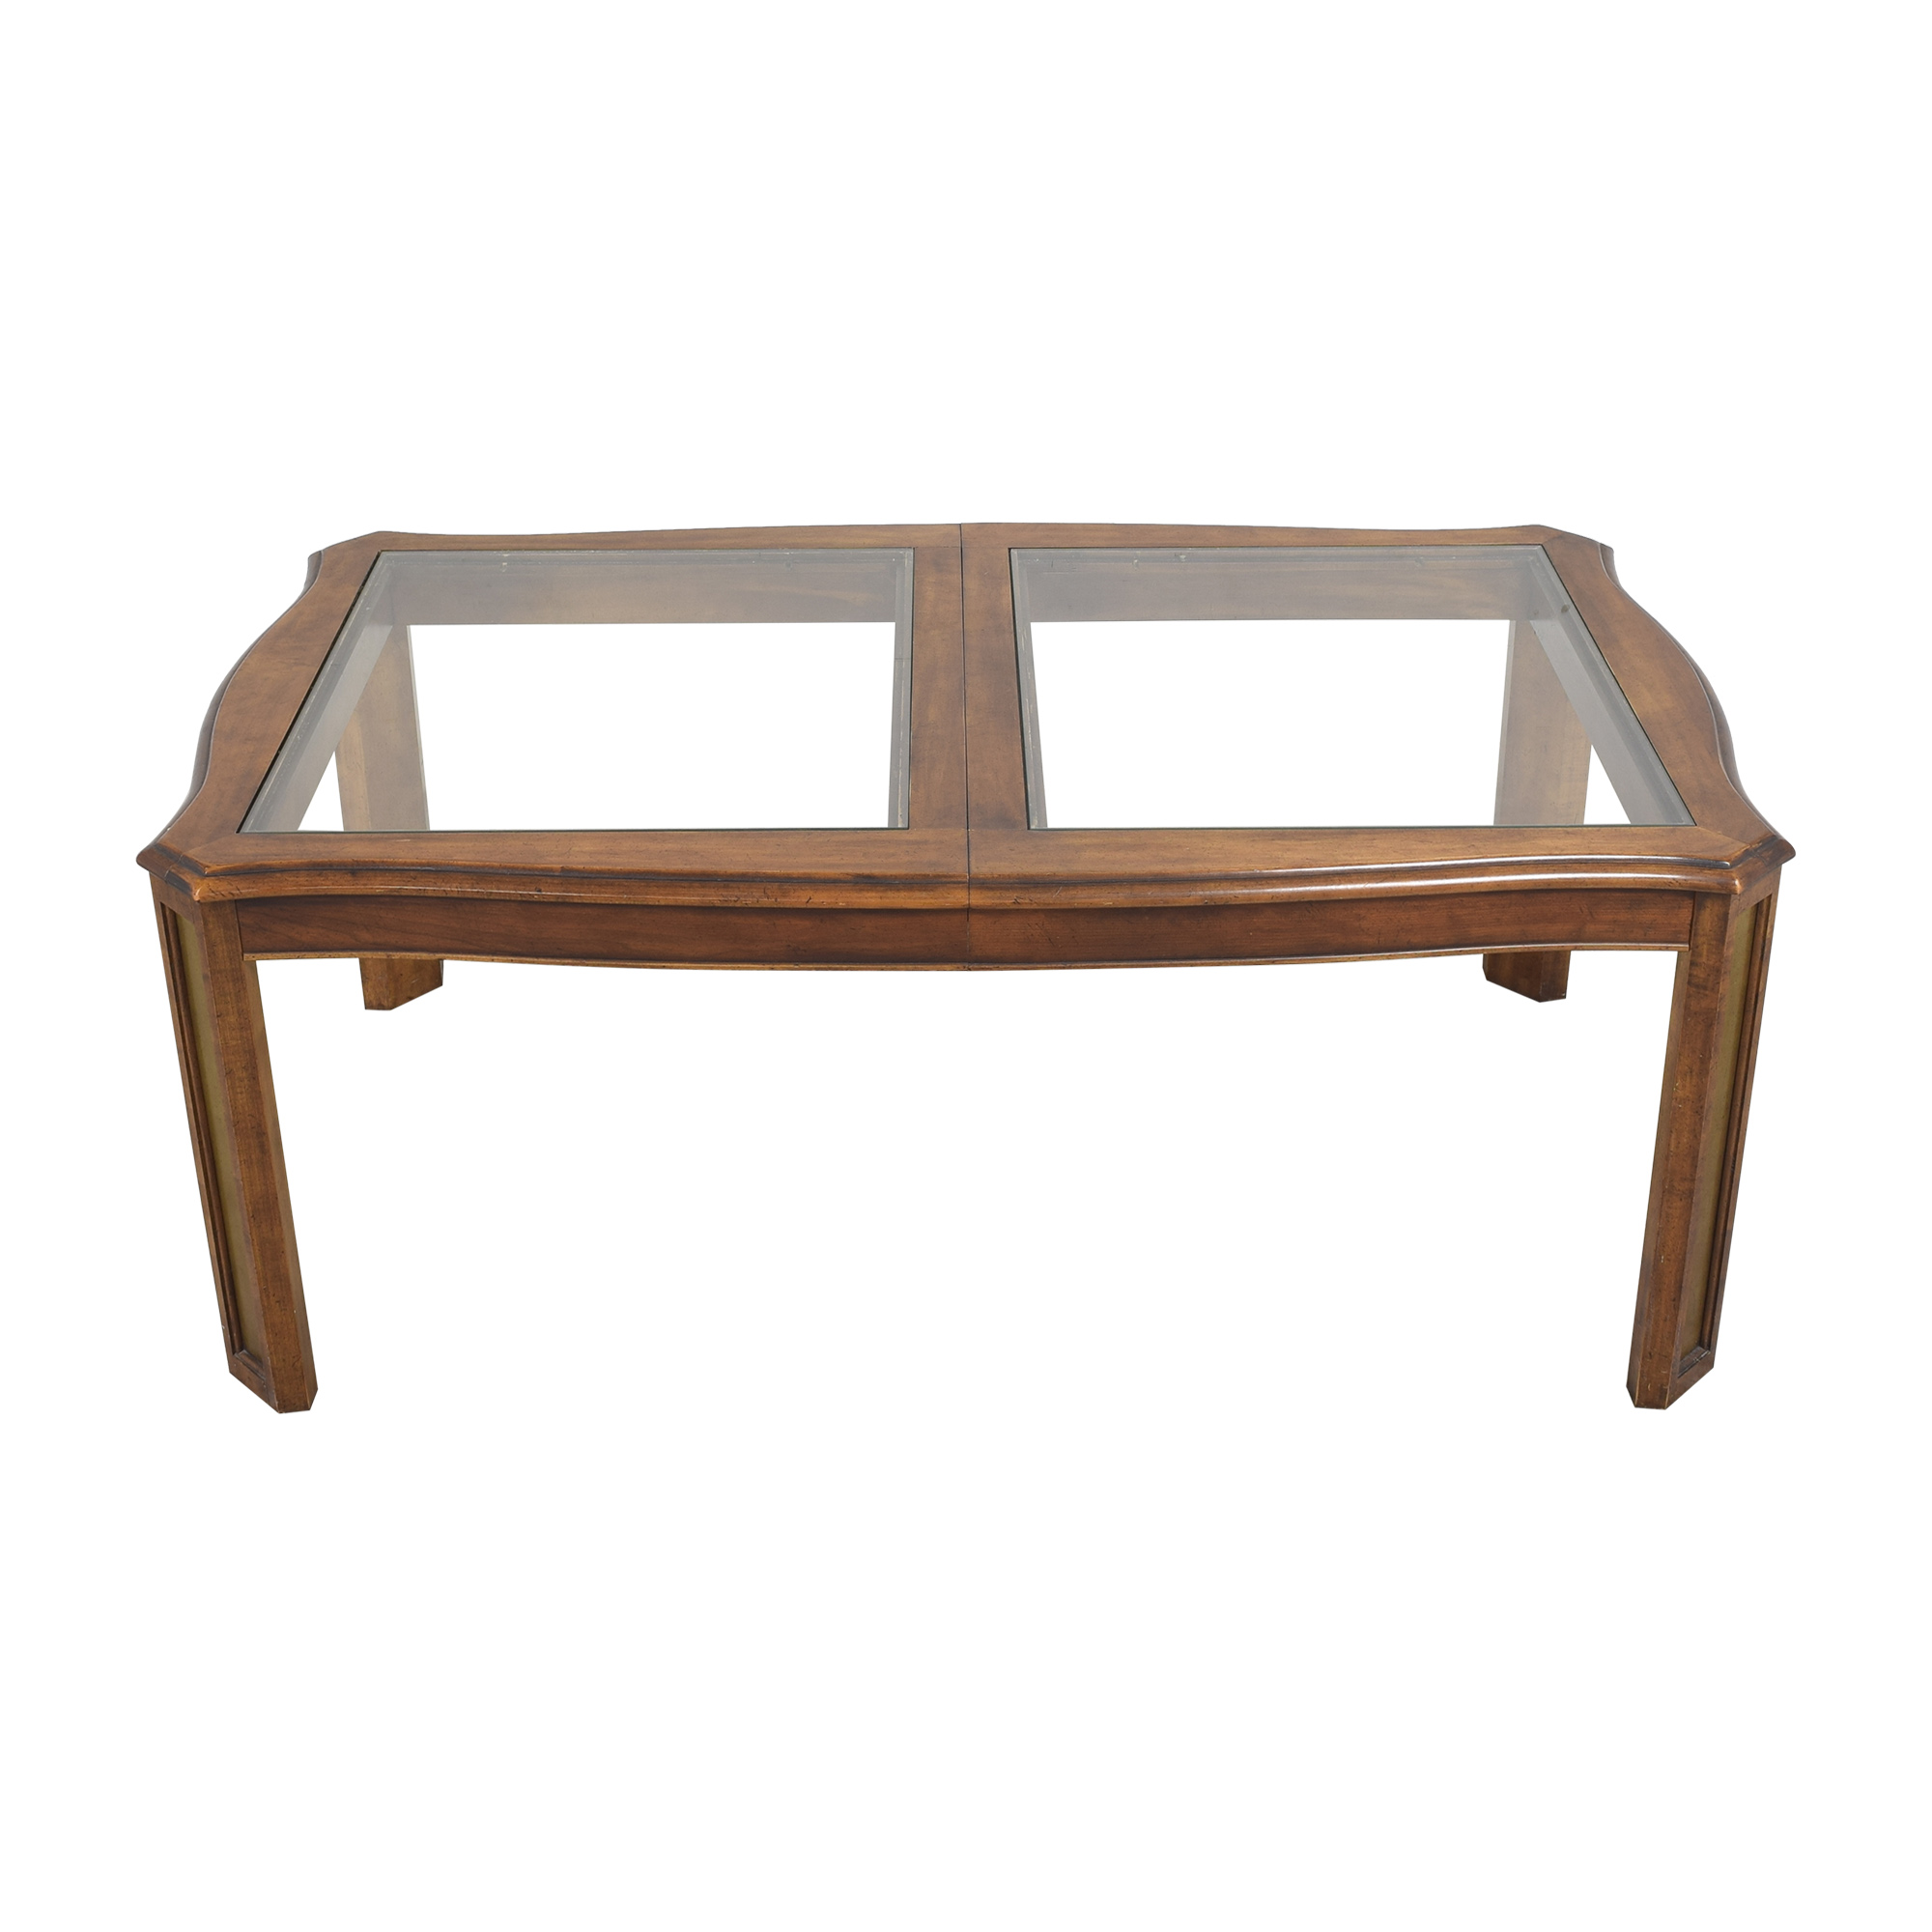 shop American of Martinsville Extendable Dining Table American of Martinsville Dinner Tables